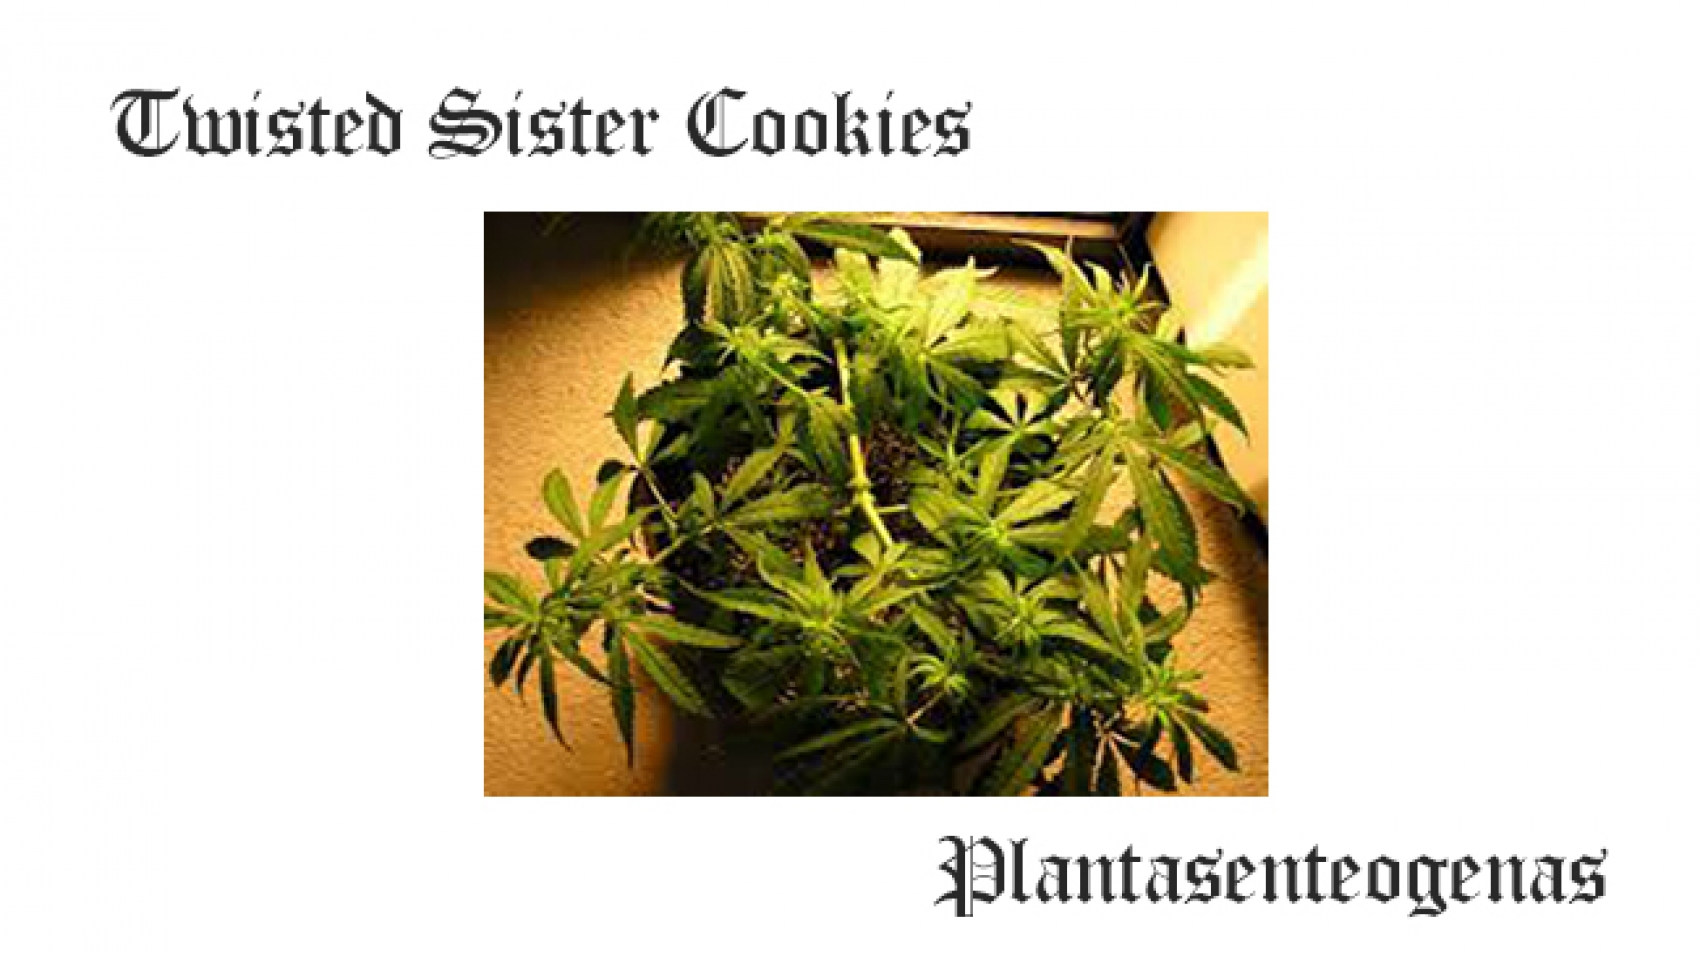 Twisted Sister Cookies